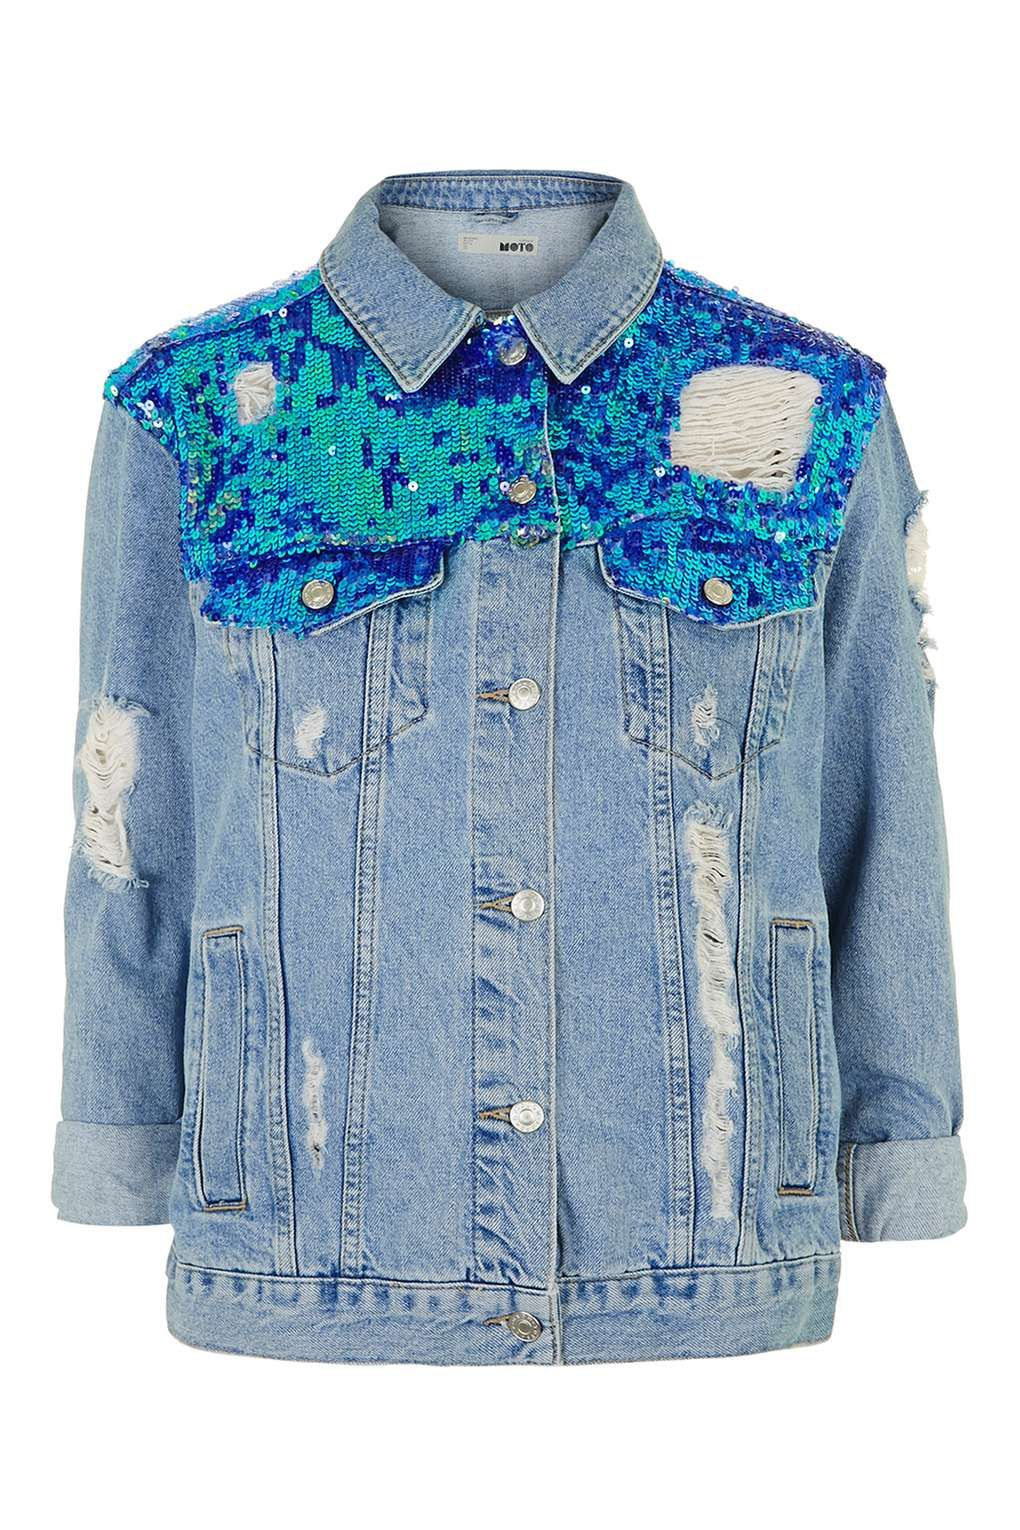 MOTO Sequin Ripped Jacket Sequins, and Denim jackets